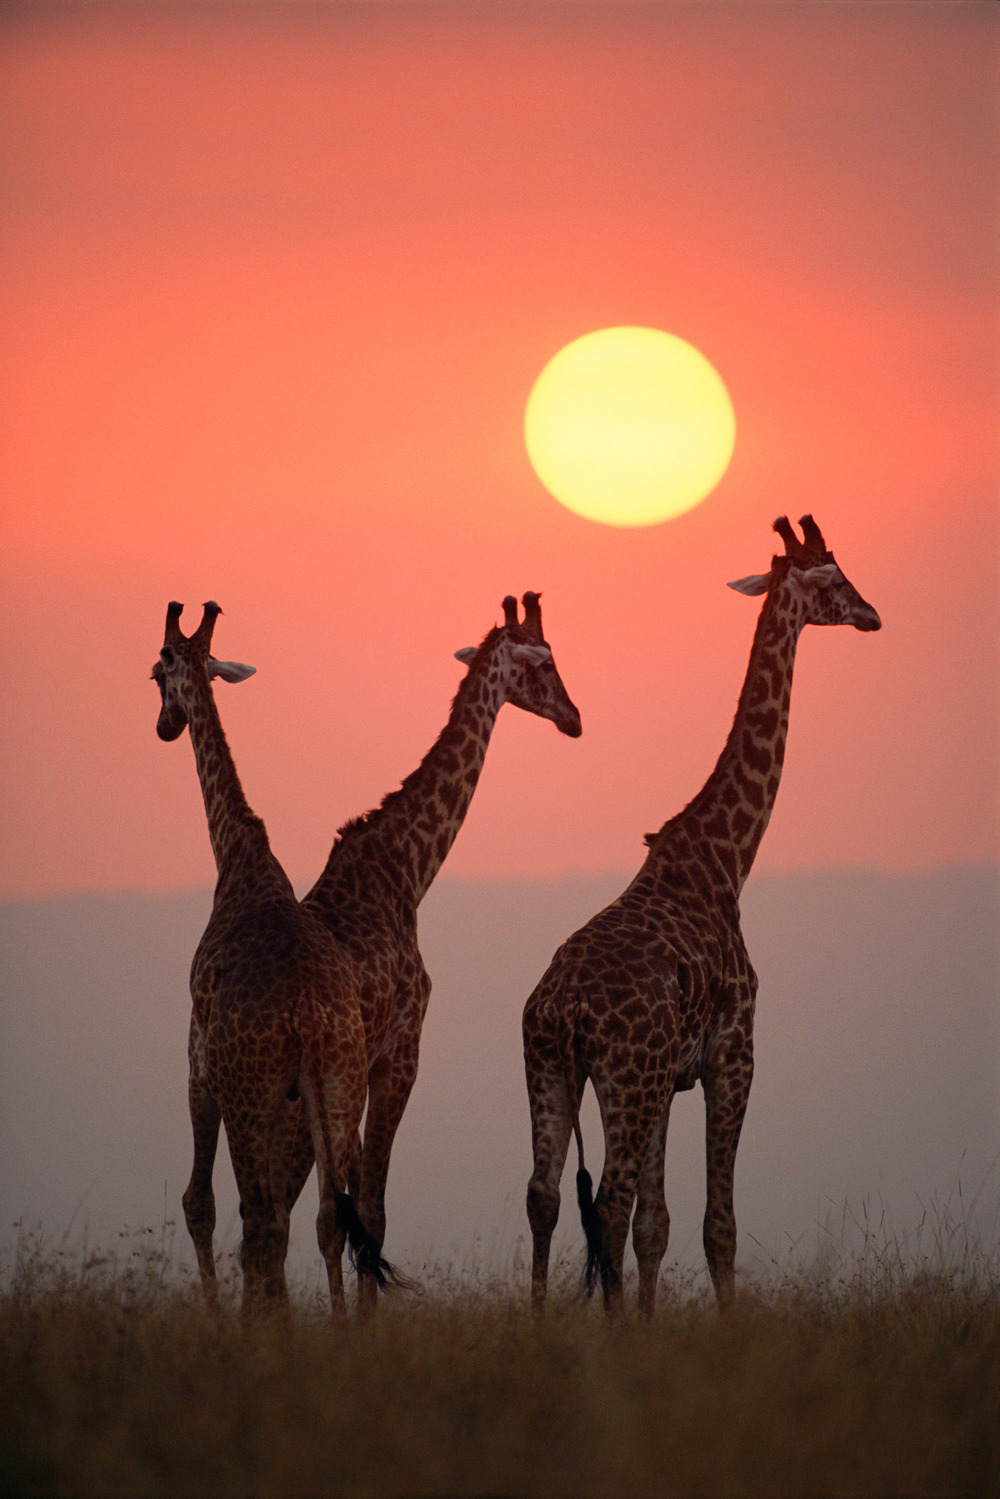 Maasai giraffes at sunset, Masai Mara National Reserve, Kenya